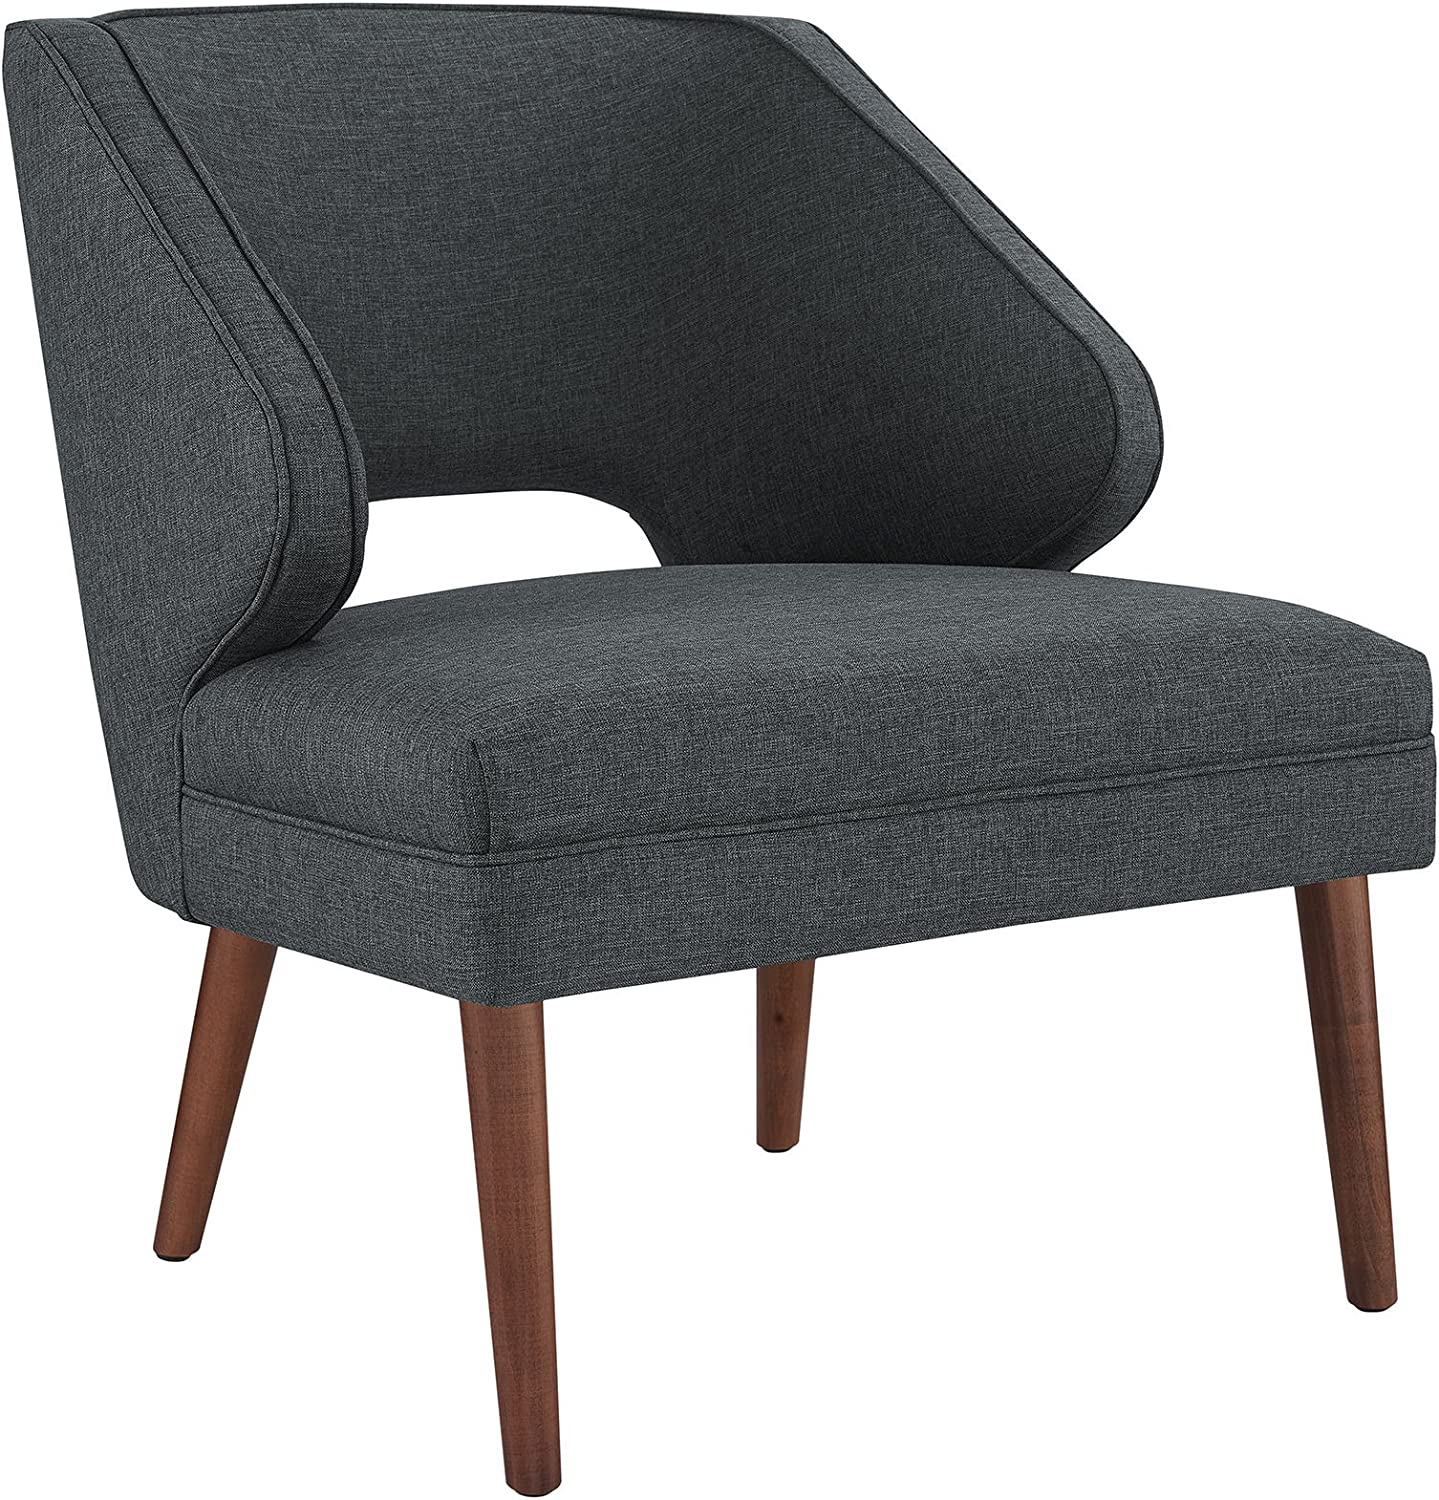 Modway Dock Mid-Century Modern Upholstered Fabric Accent Arm Lounge Chair in Gray